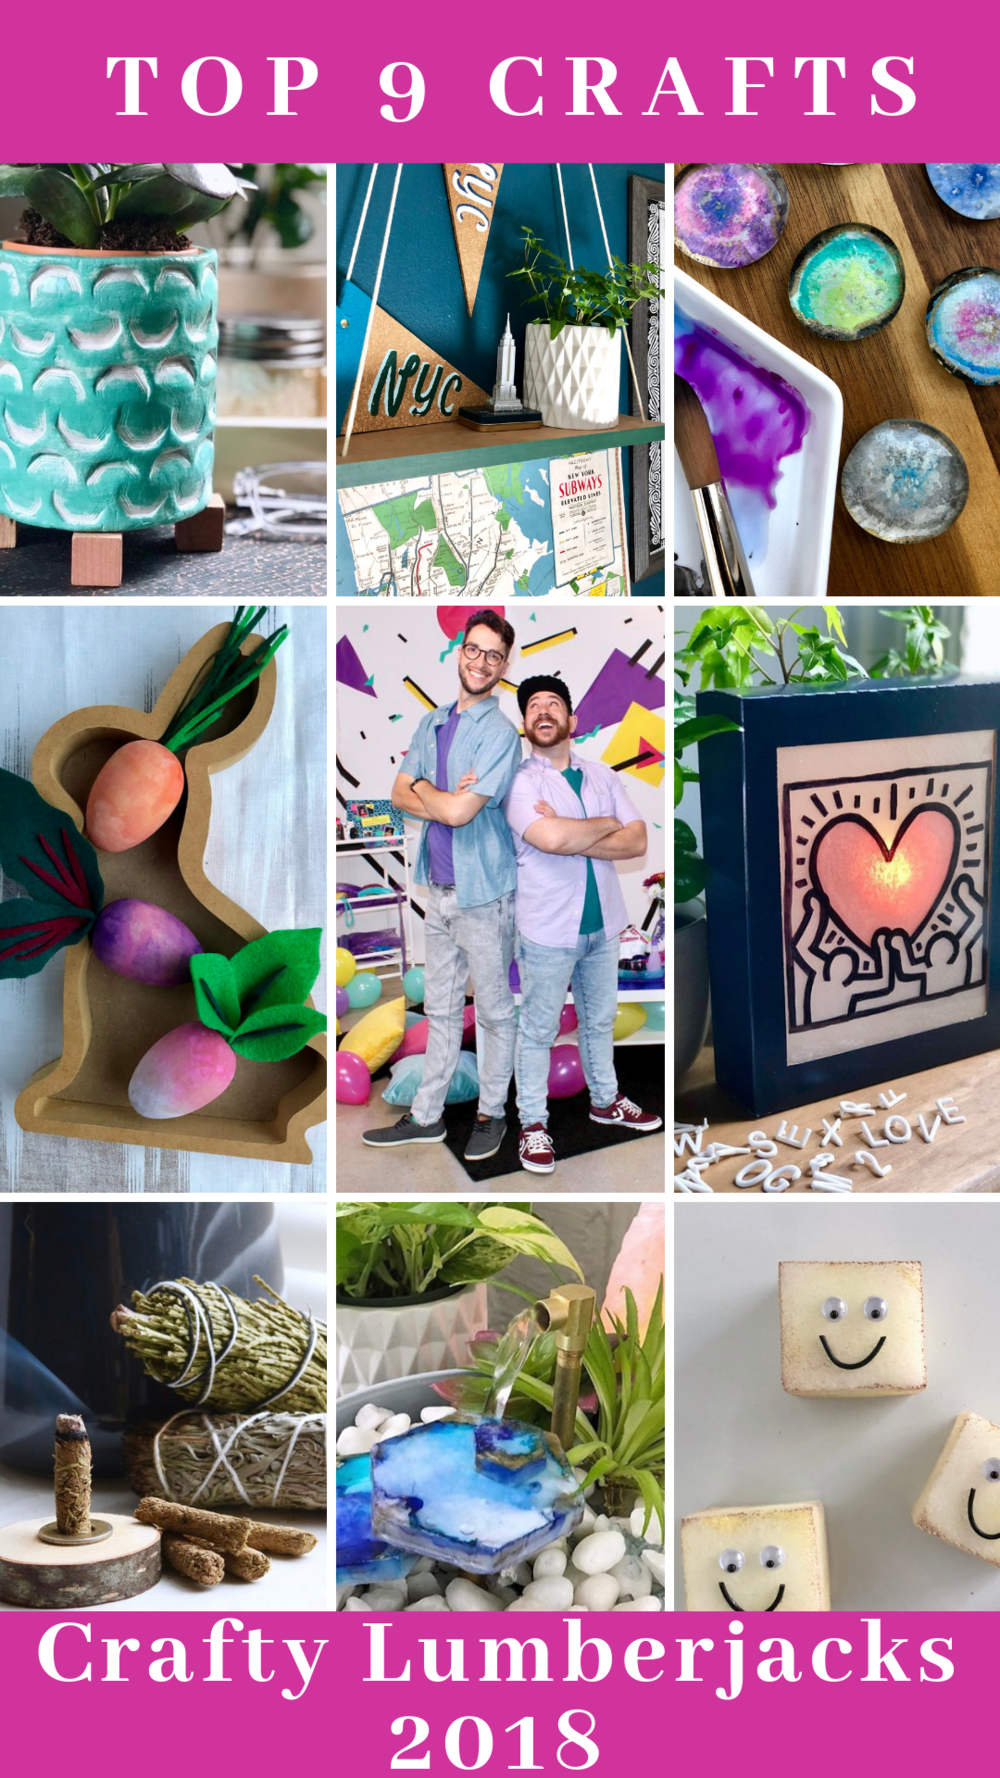 We're counting down our top 9 DIYs from 2018! So many fun projects, so little time!